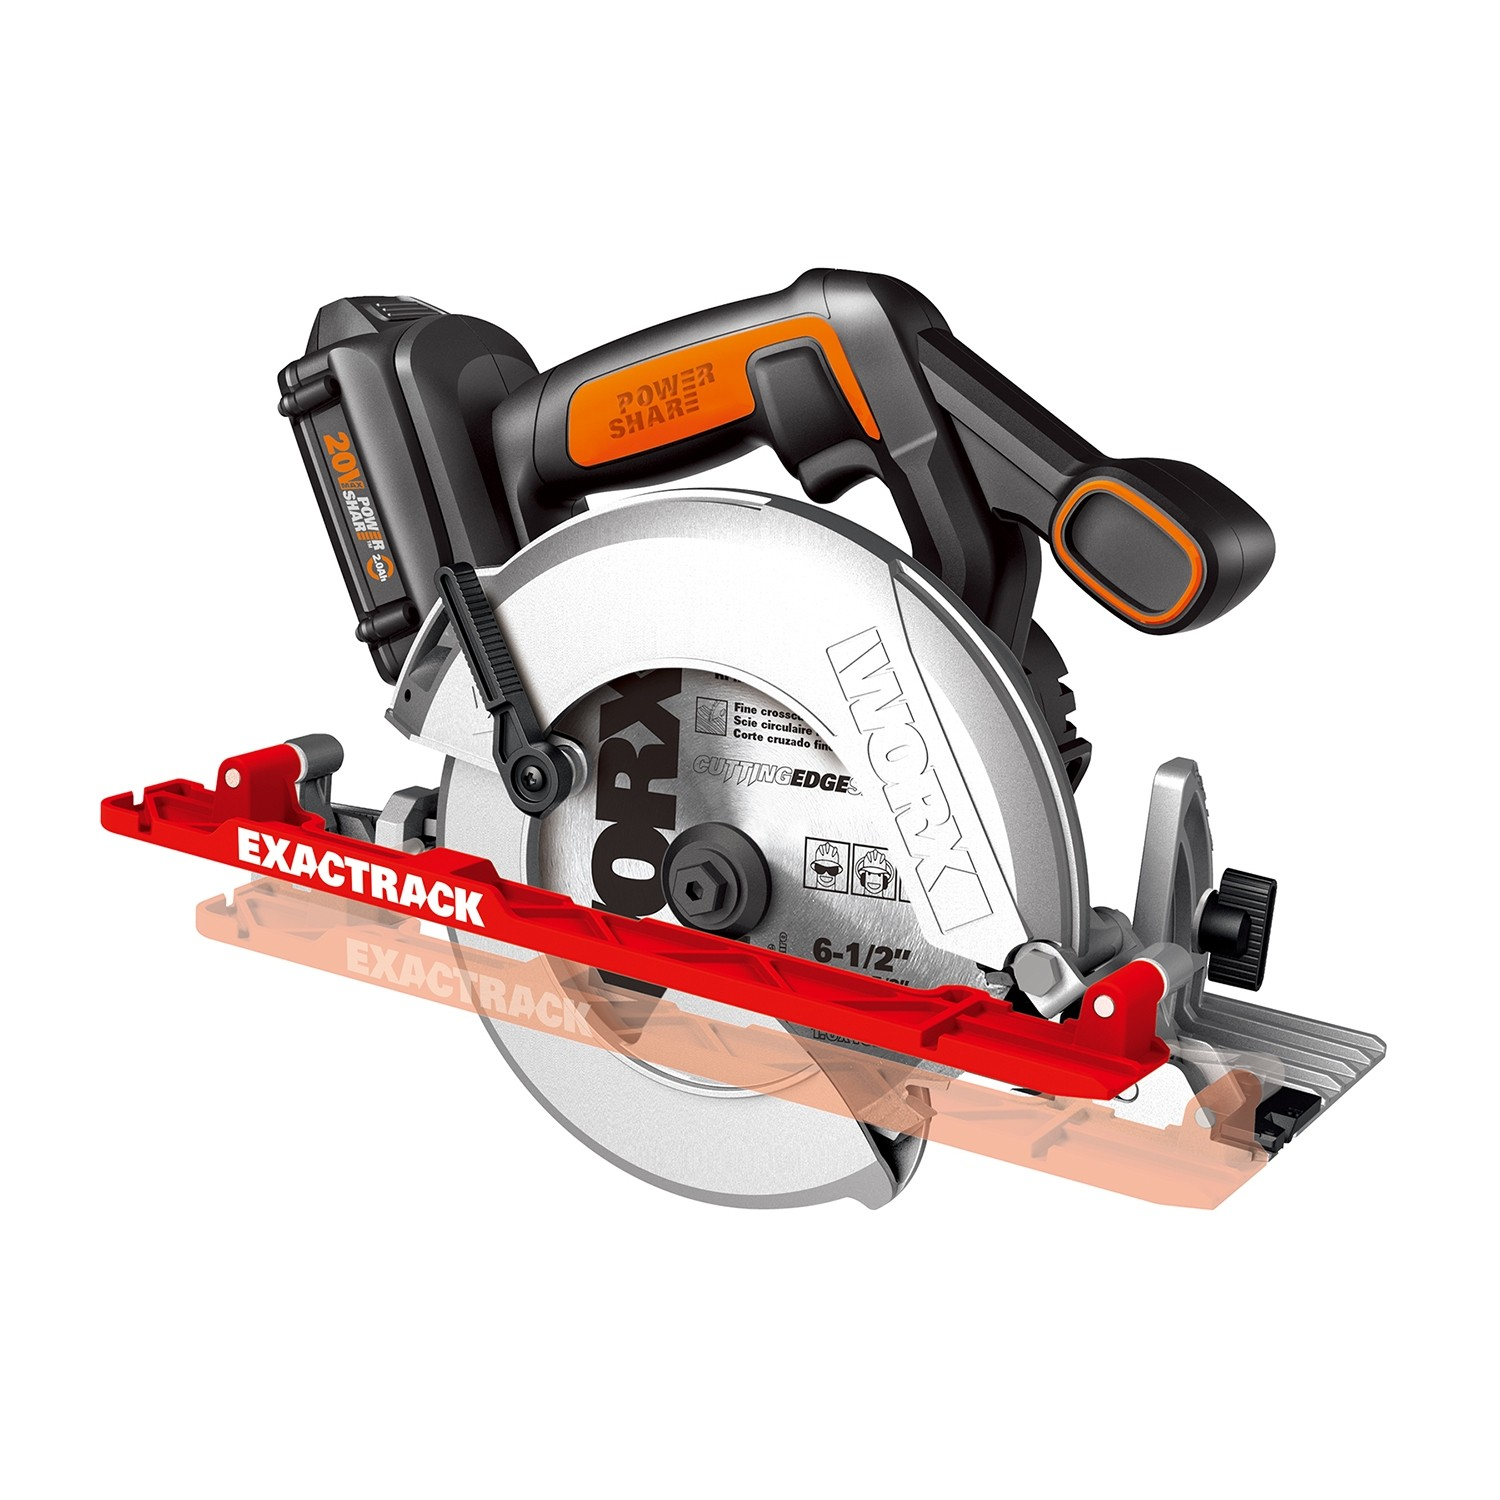 Worx exactrack 20v circular saw wx530 wx530l tool craze worx has an interesting new cordless 20v circular saw called exactrack the model number is wx530 if you live in the uk and wx530l for those of us in the greentooth Images